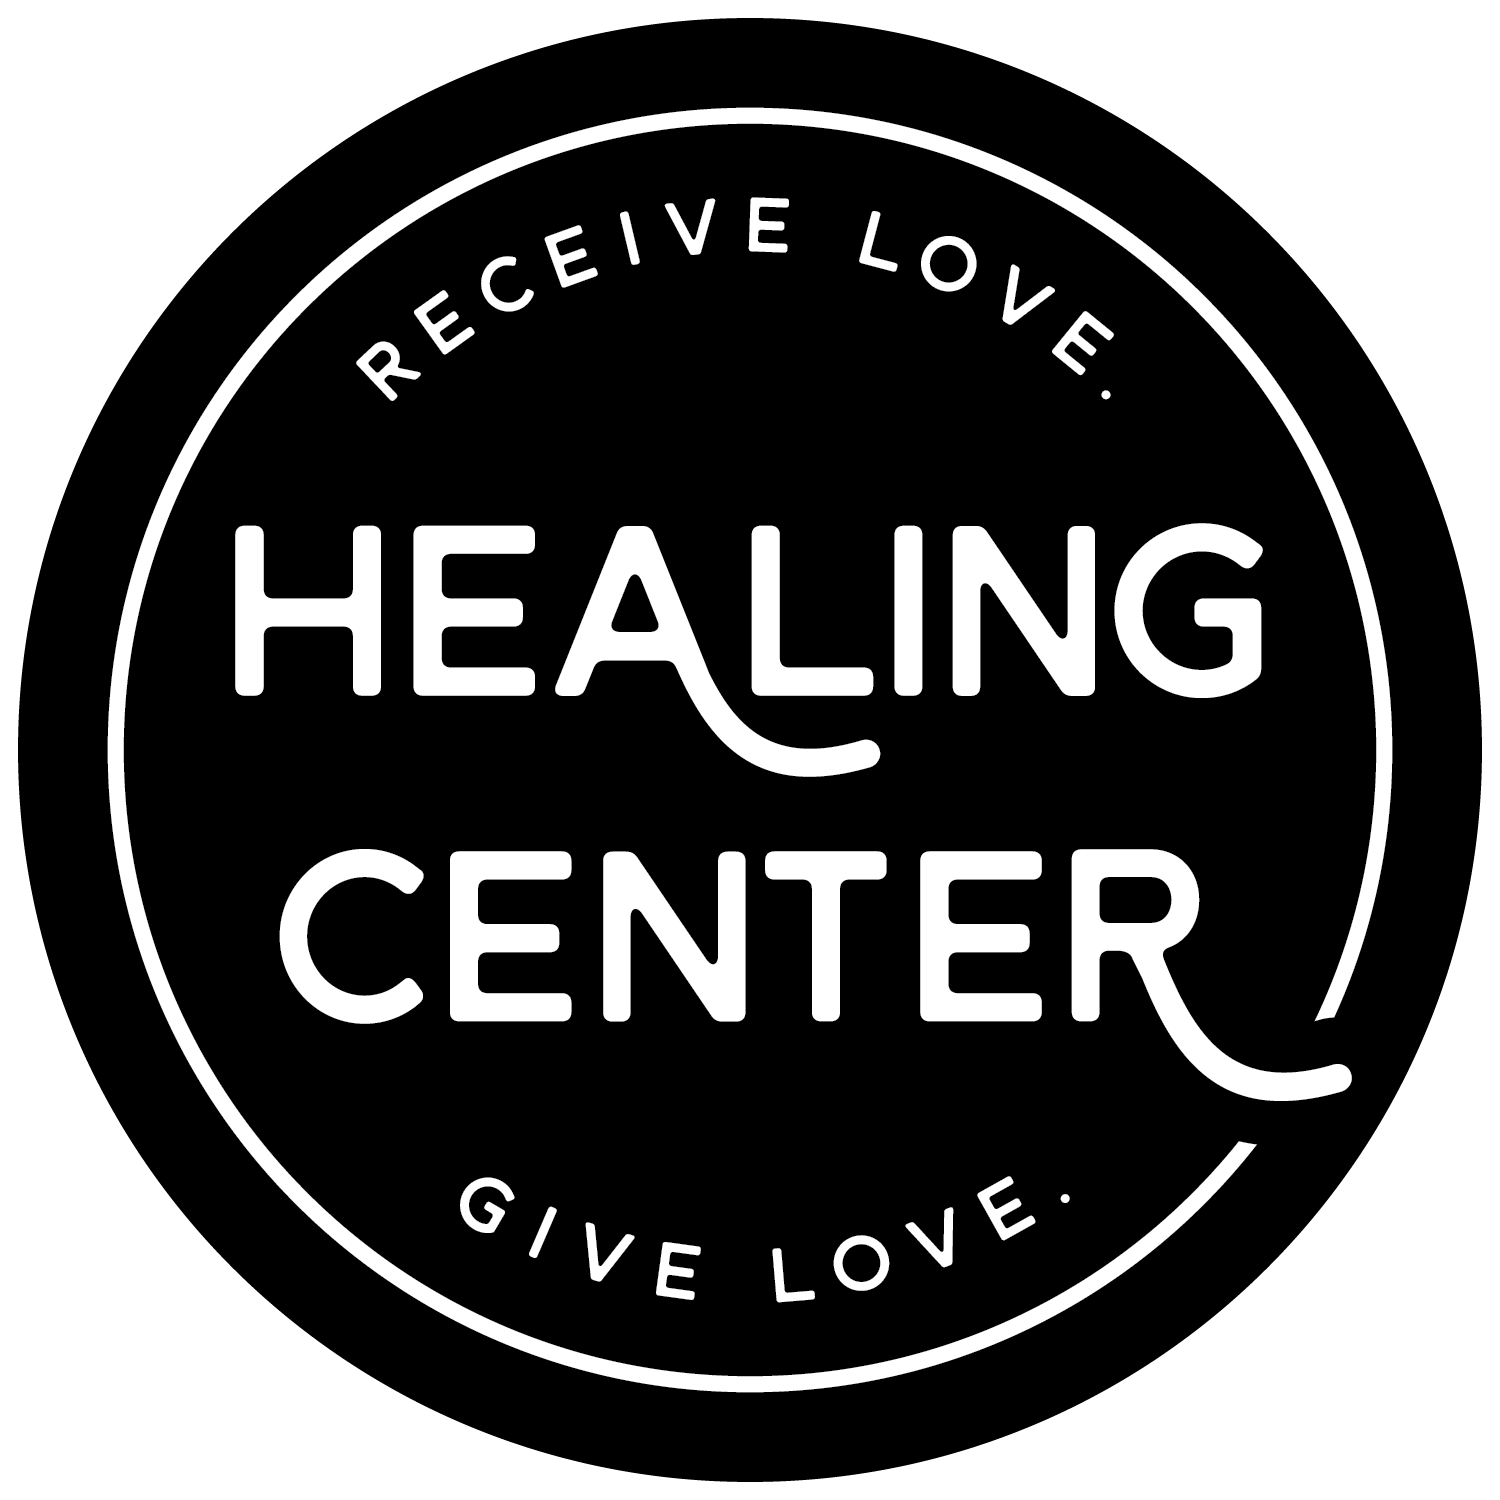 Community Of Christ Healing Center